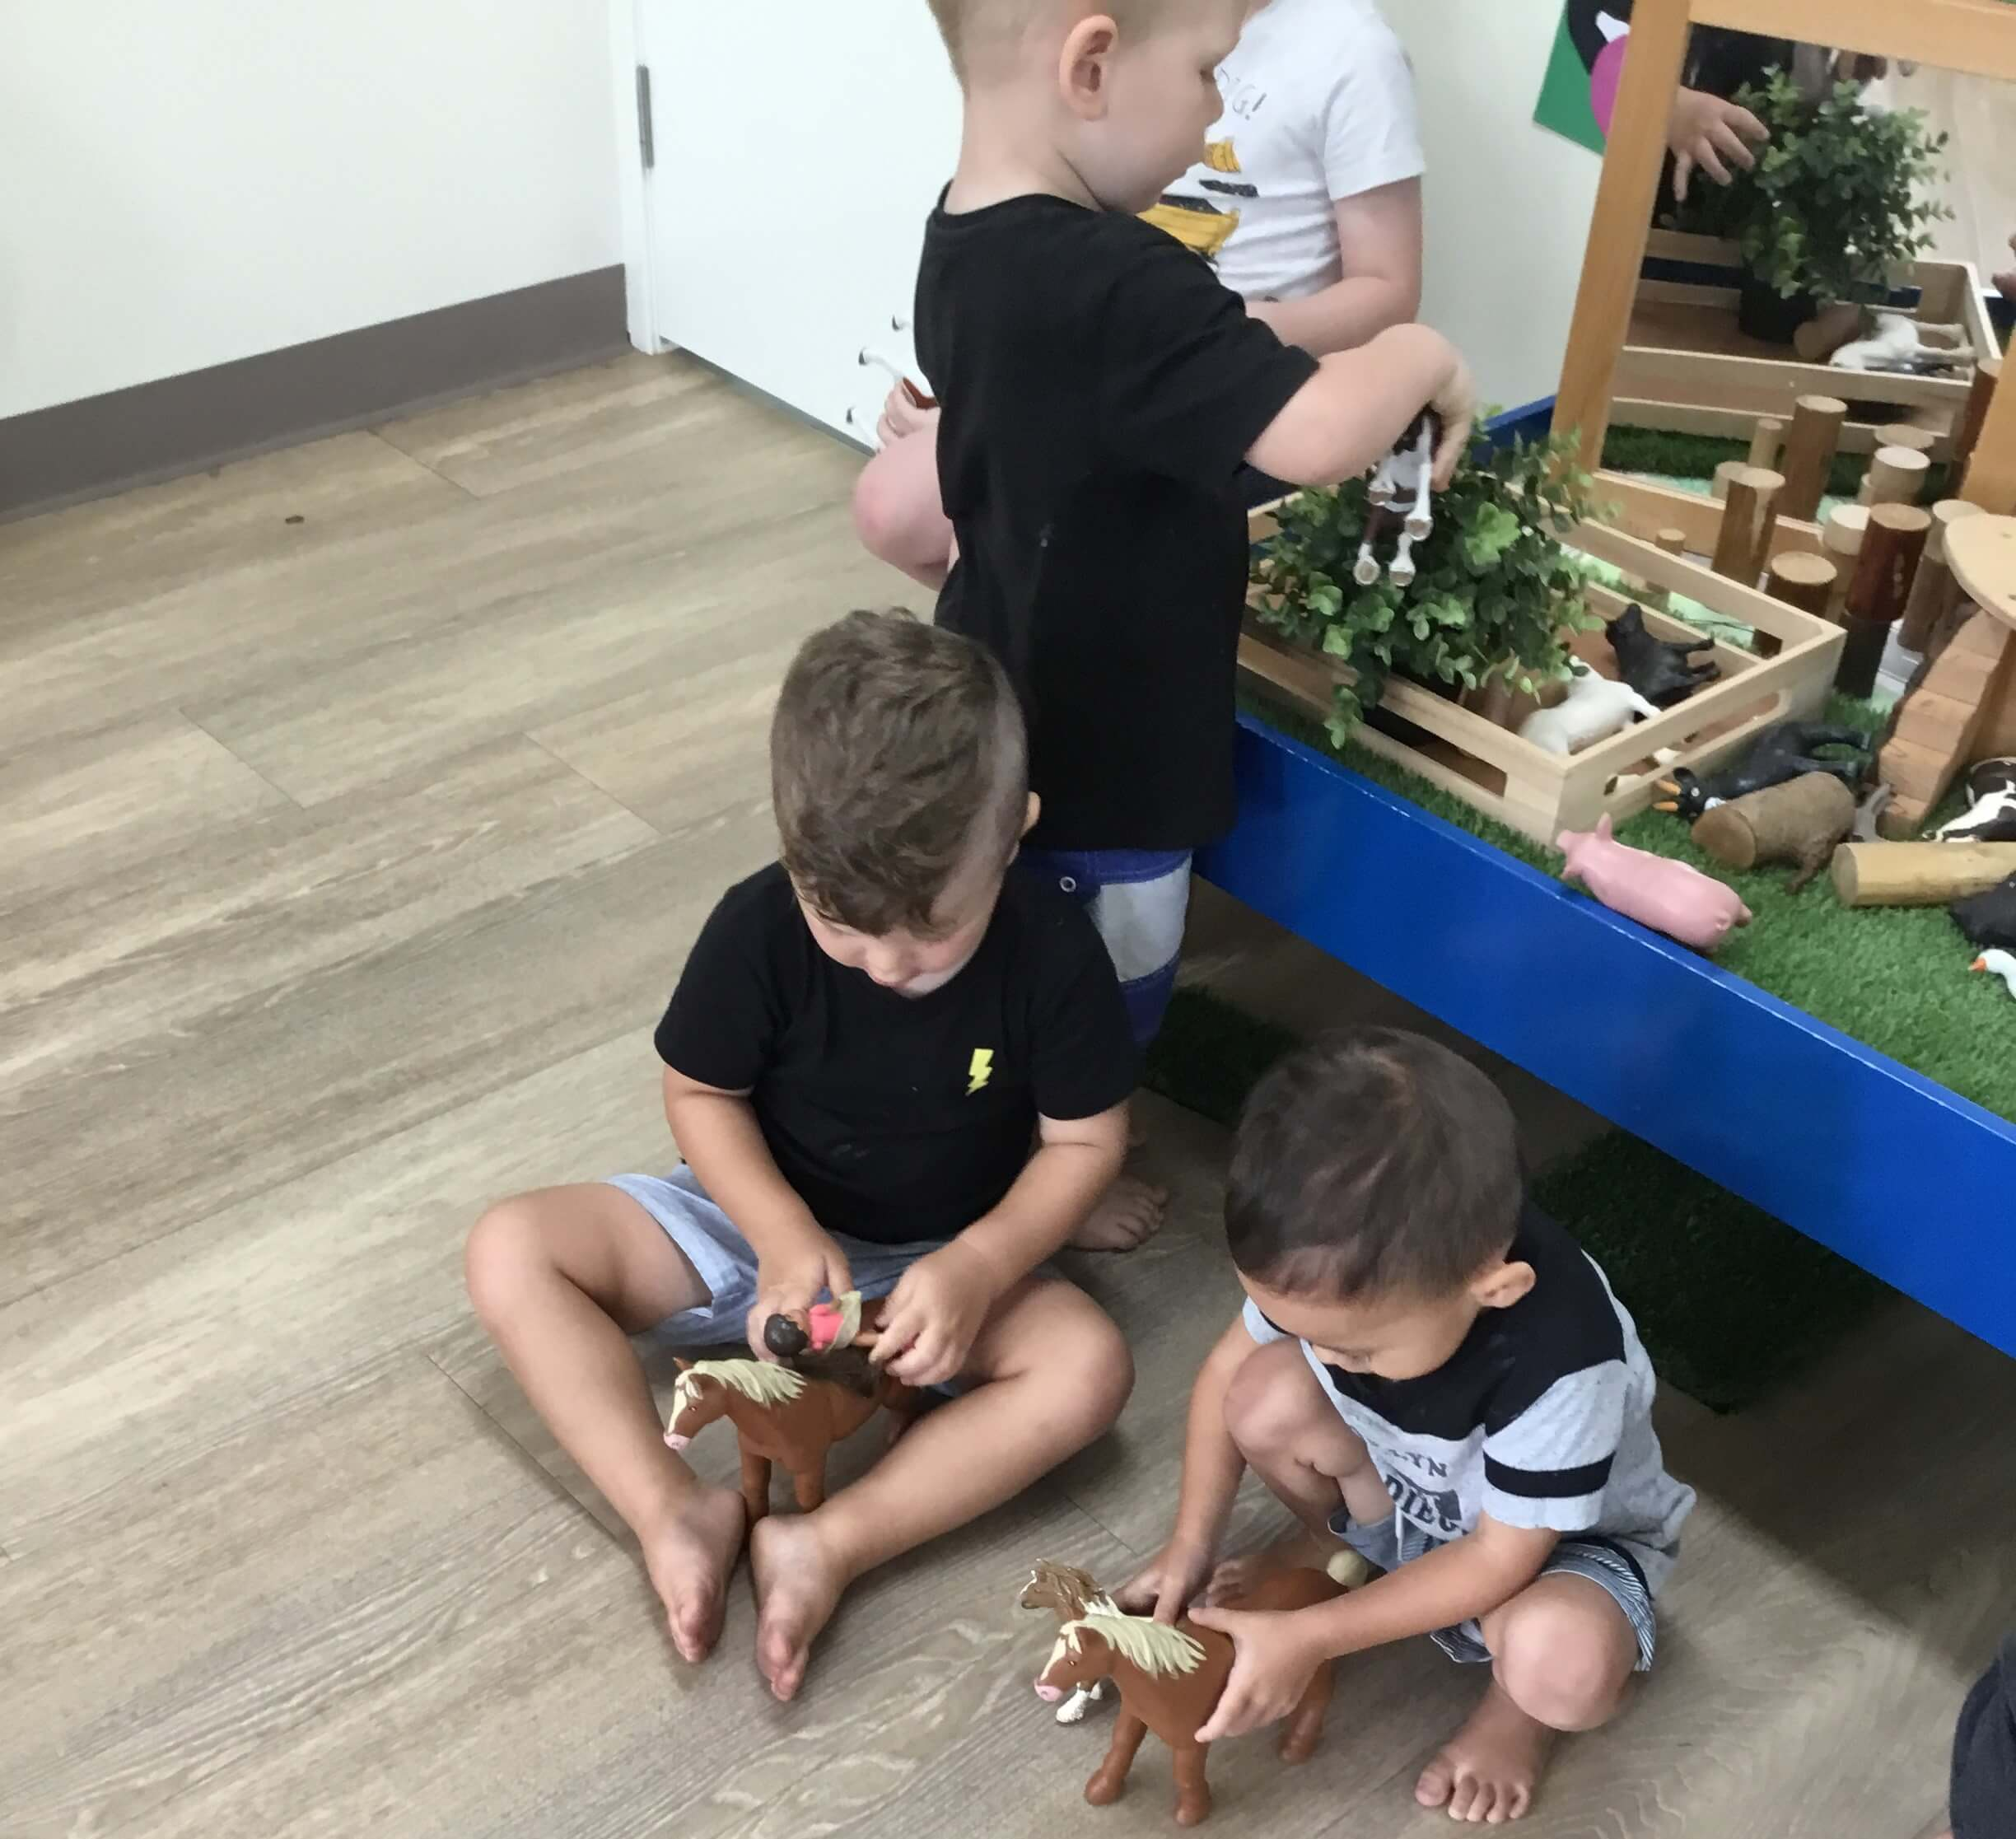 The children who attend our Borobi Studio (children aged 2-3 years of age) have recently shown a great interest in farm animals. As we listen to them playing with the horses and cows, we can hear lots of conversations taking place with the occasional animal noise being made. Our educators are guided by the The […]